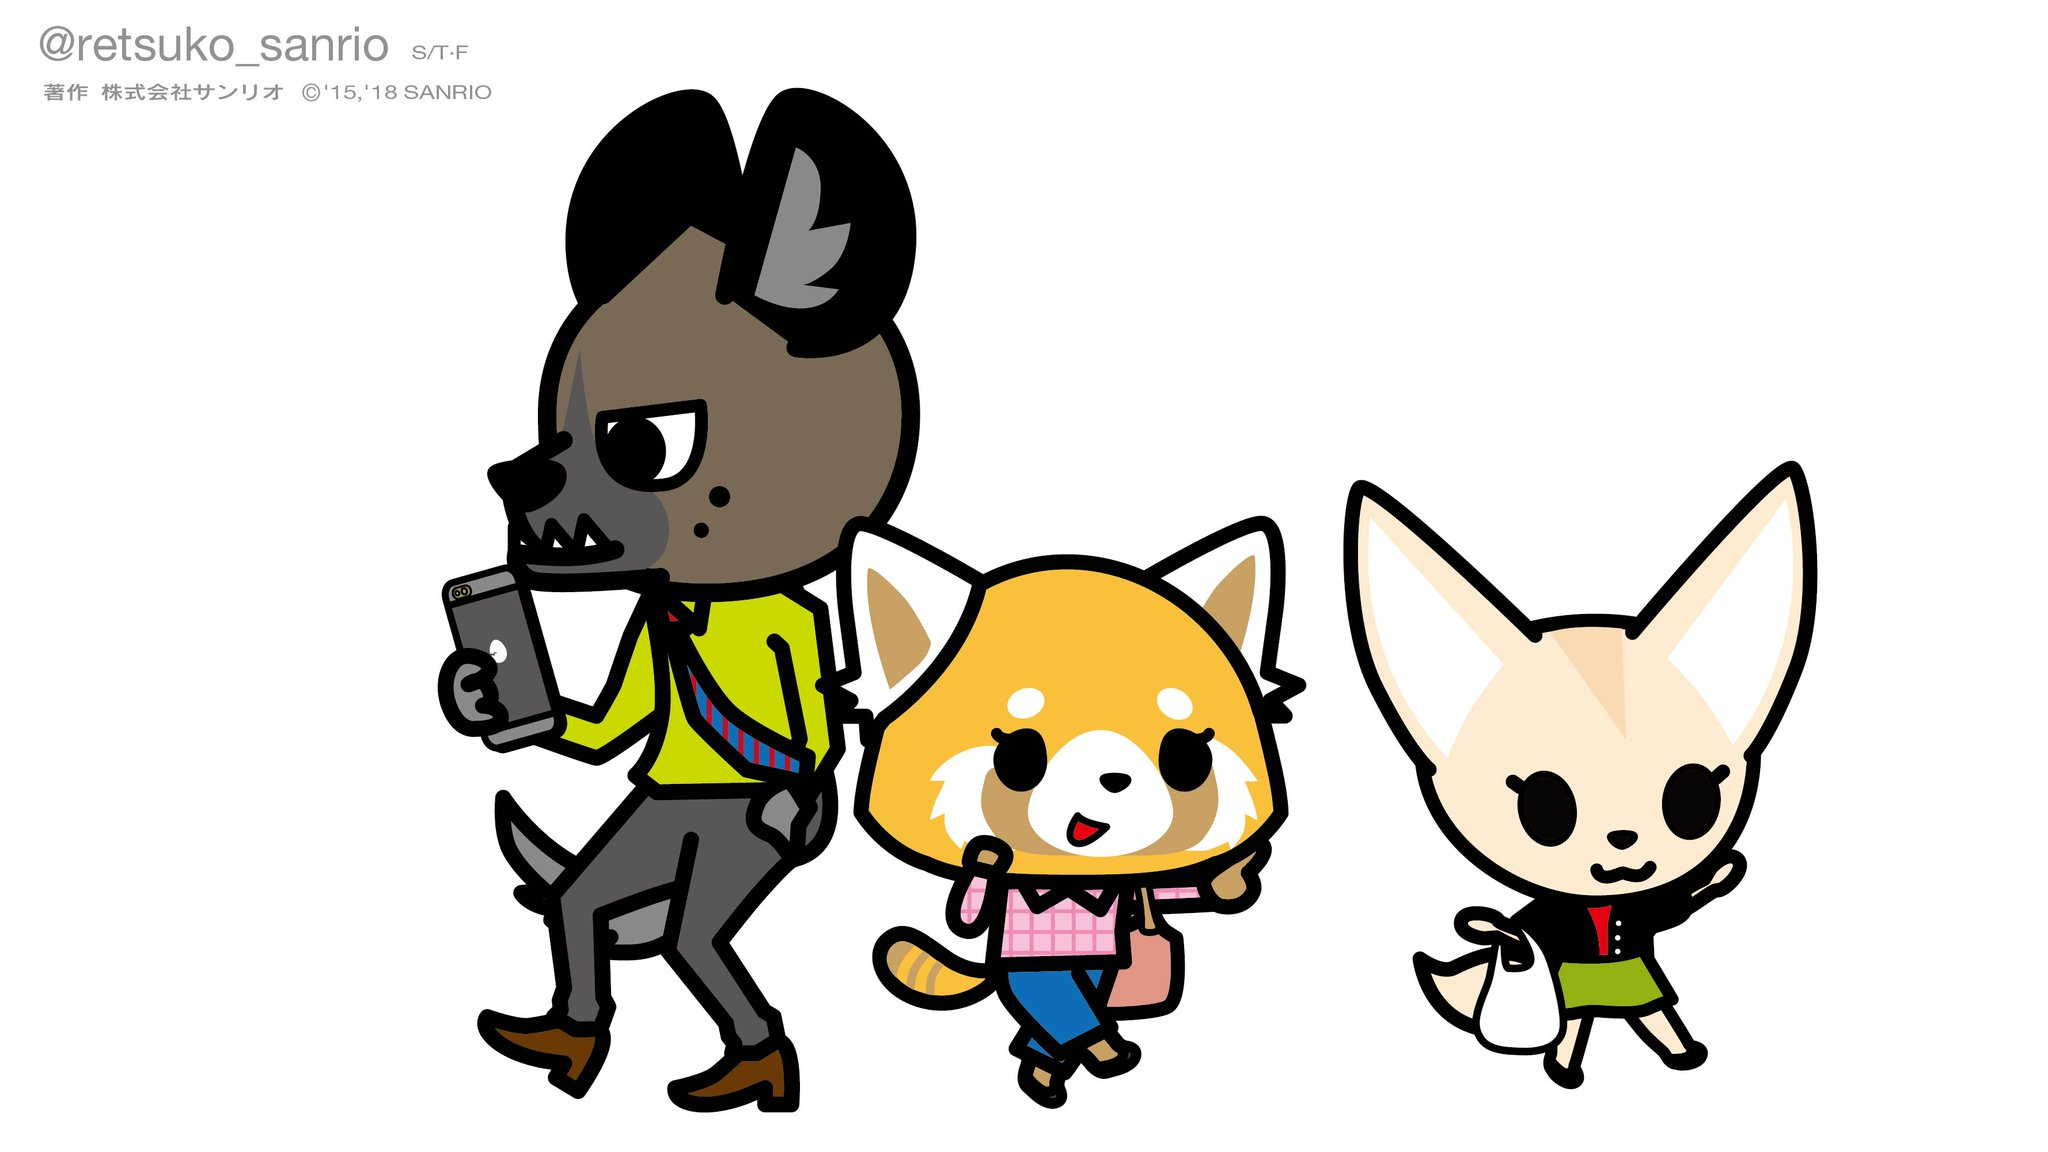 Sanrio Shows Their Zootopia Appreciation!